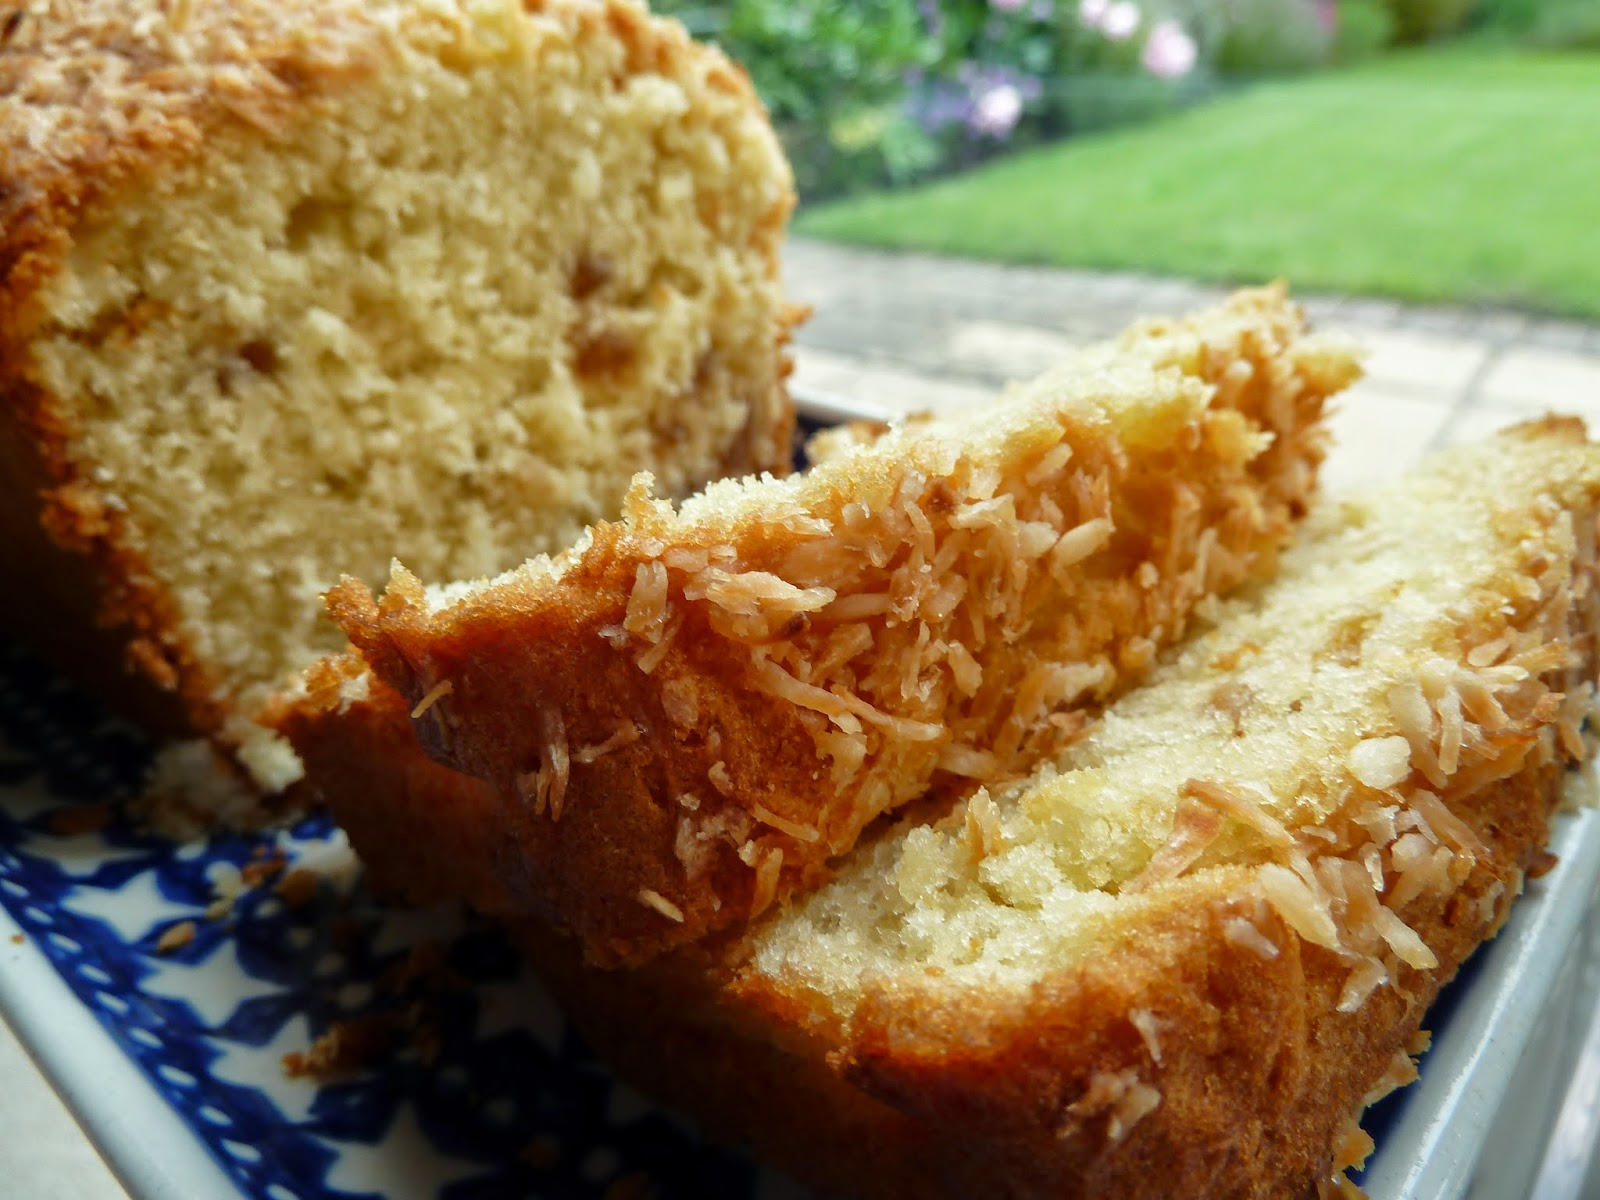 Cherry Loaf recipe or Cherry and Coconut Loaf recipe